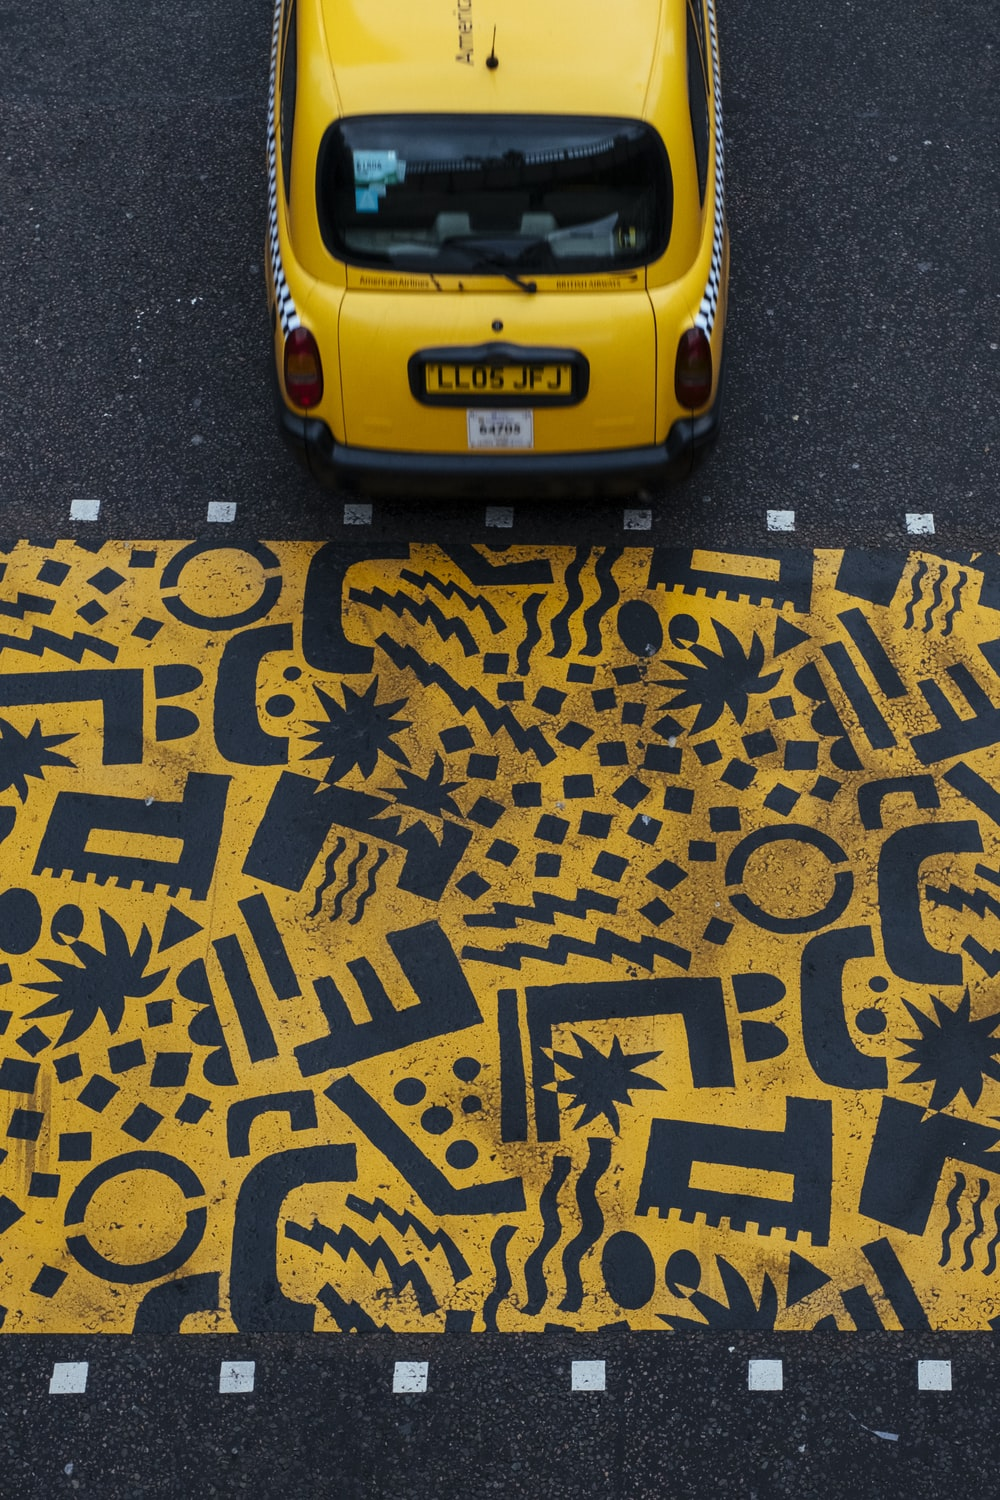 yellow vehicle parked at road during daytime